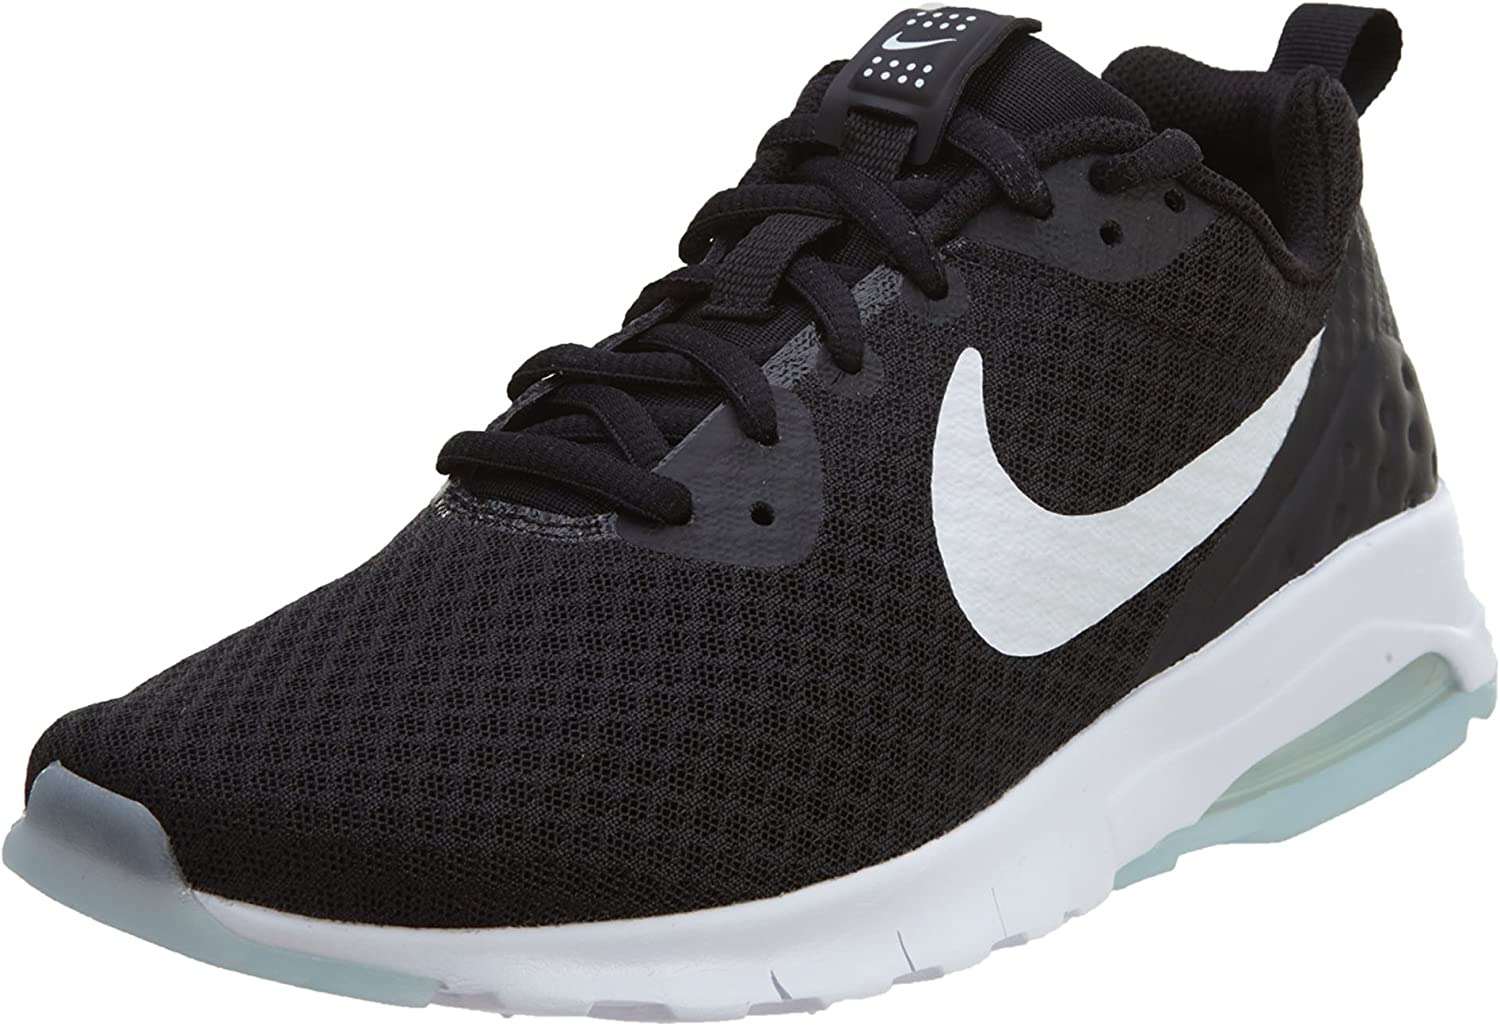 Air Max Motion LW Running Shoes